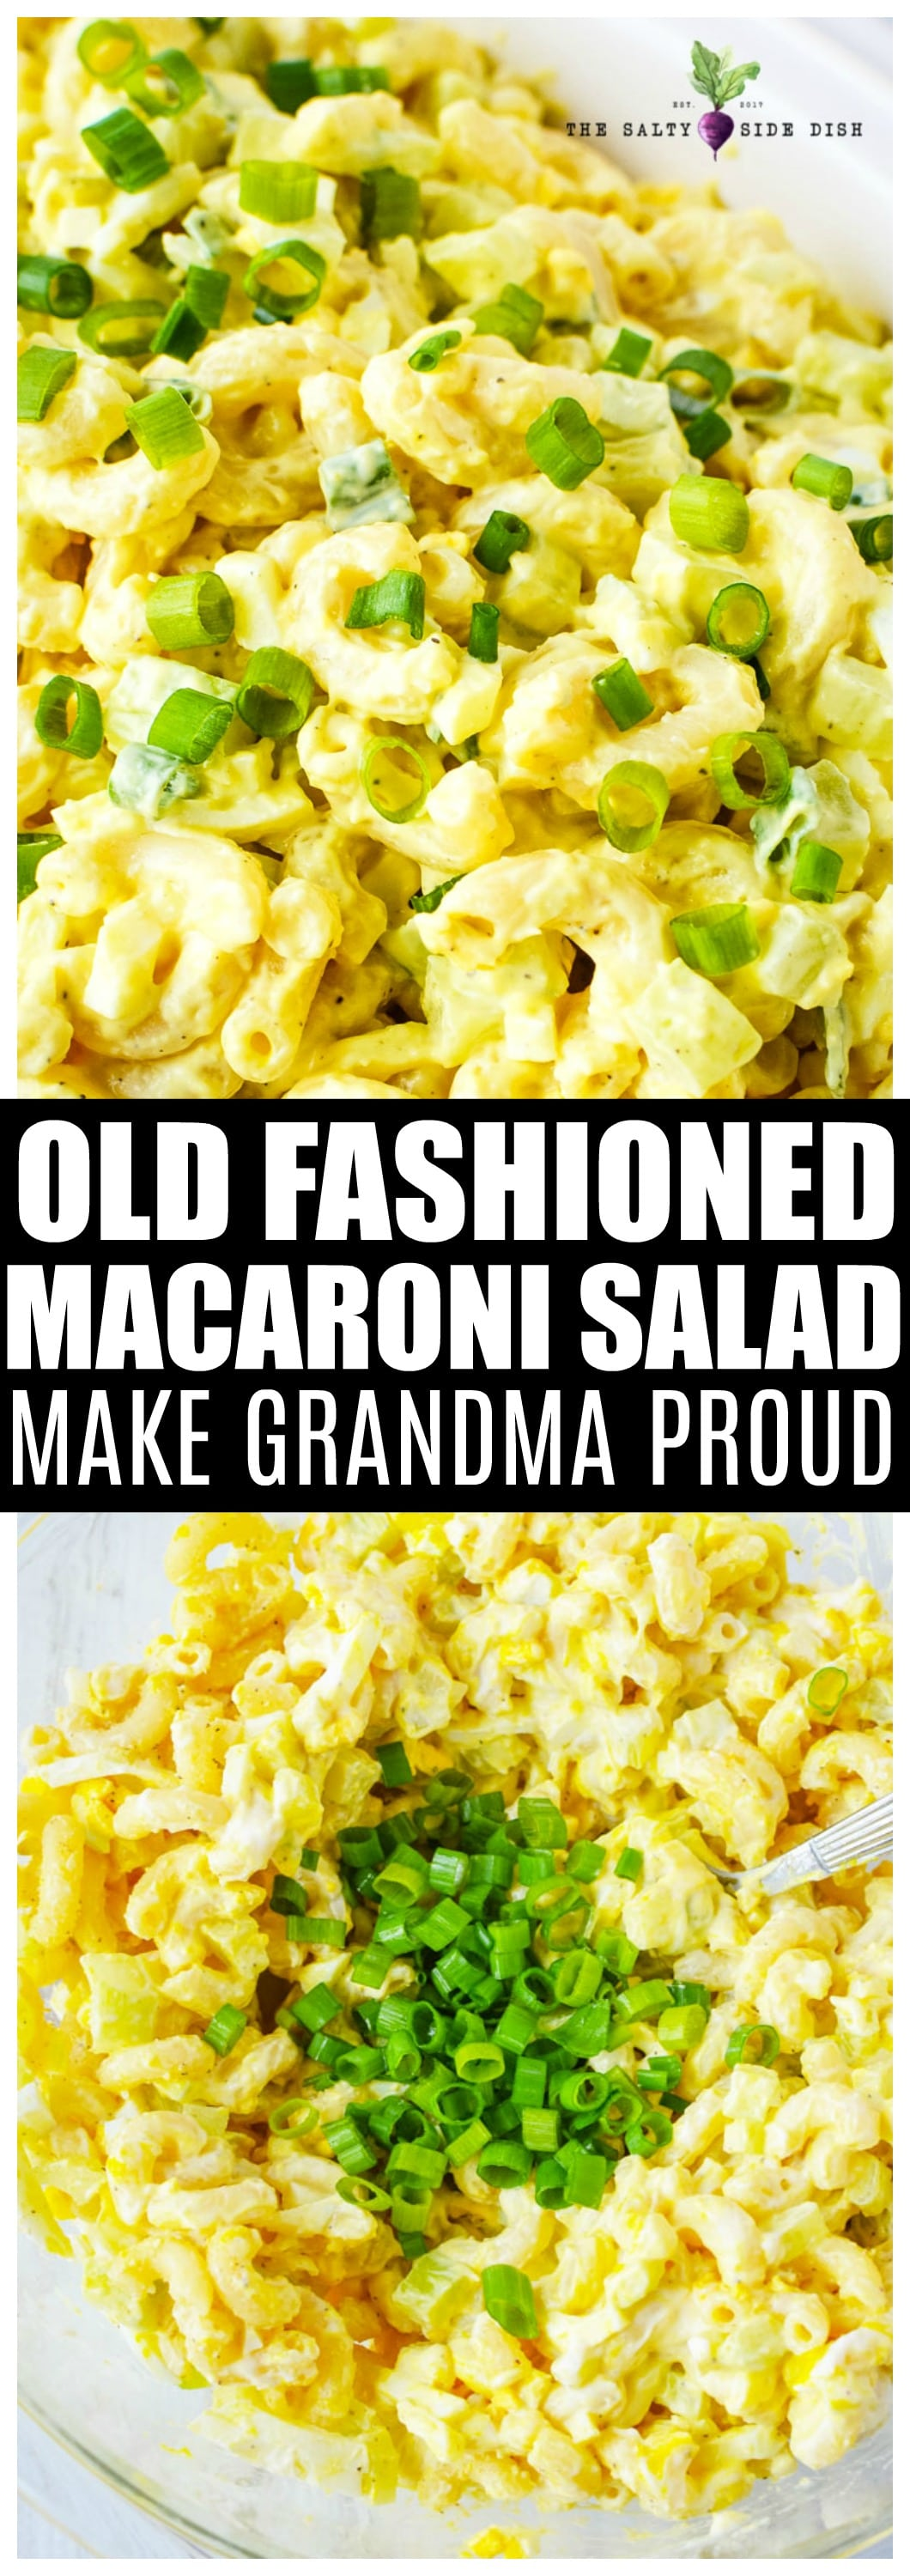 Old Fashioned Macaroni Salad Recipe side dish perfect for feeding a crowd - just like grandma's! #macaronisalad #salads #summersalads #retro #holiday #recipe #foodie